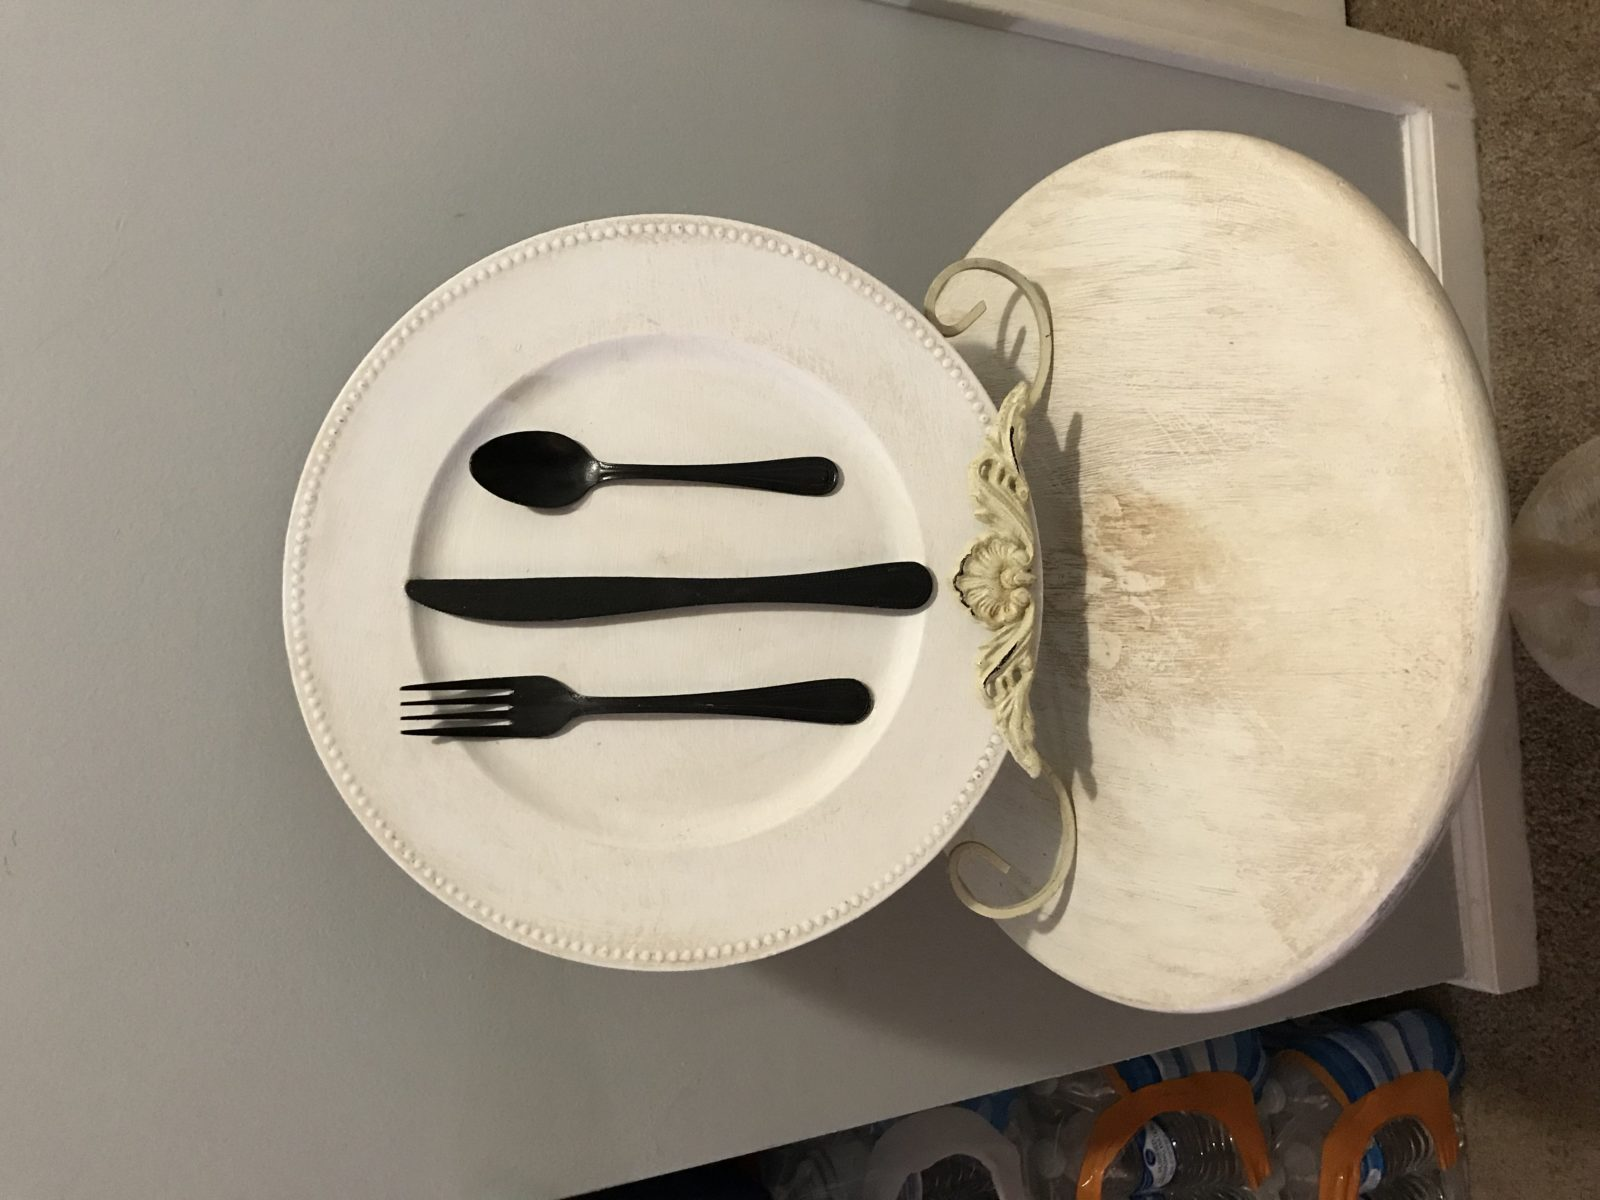 Kitchen or Dining area Decor • This ReDesign is the perfect accent for your kitchen or dining area. This piece is done in antiqued white with hammered finish bronze utensils. Can be hung or displayed in an easel.  I can custom create in your choice of colors &  styles. *Price varies*